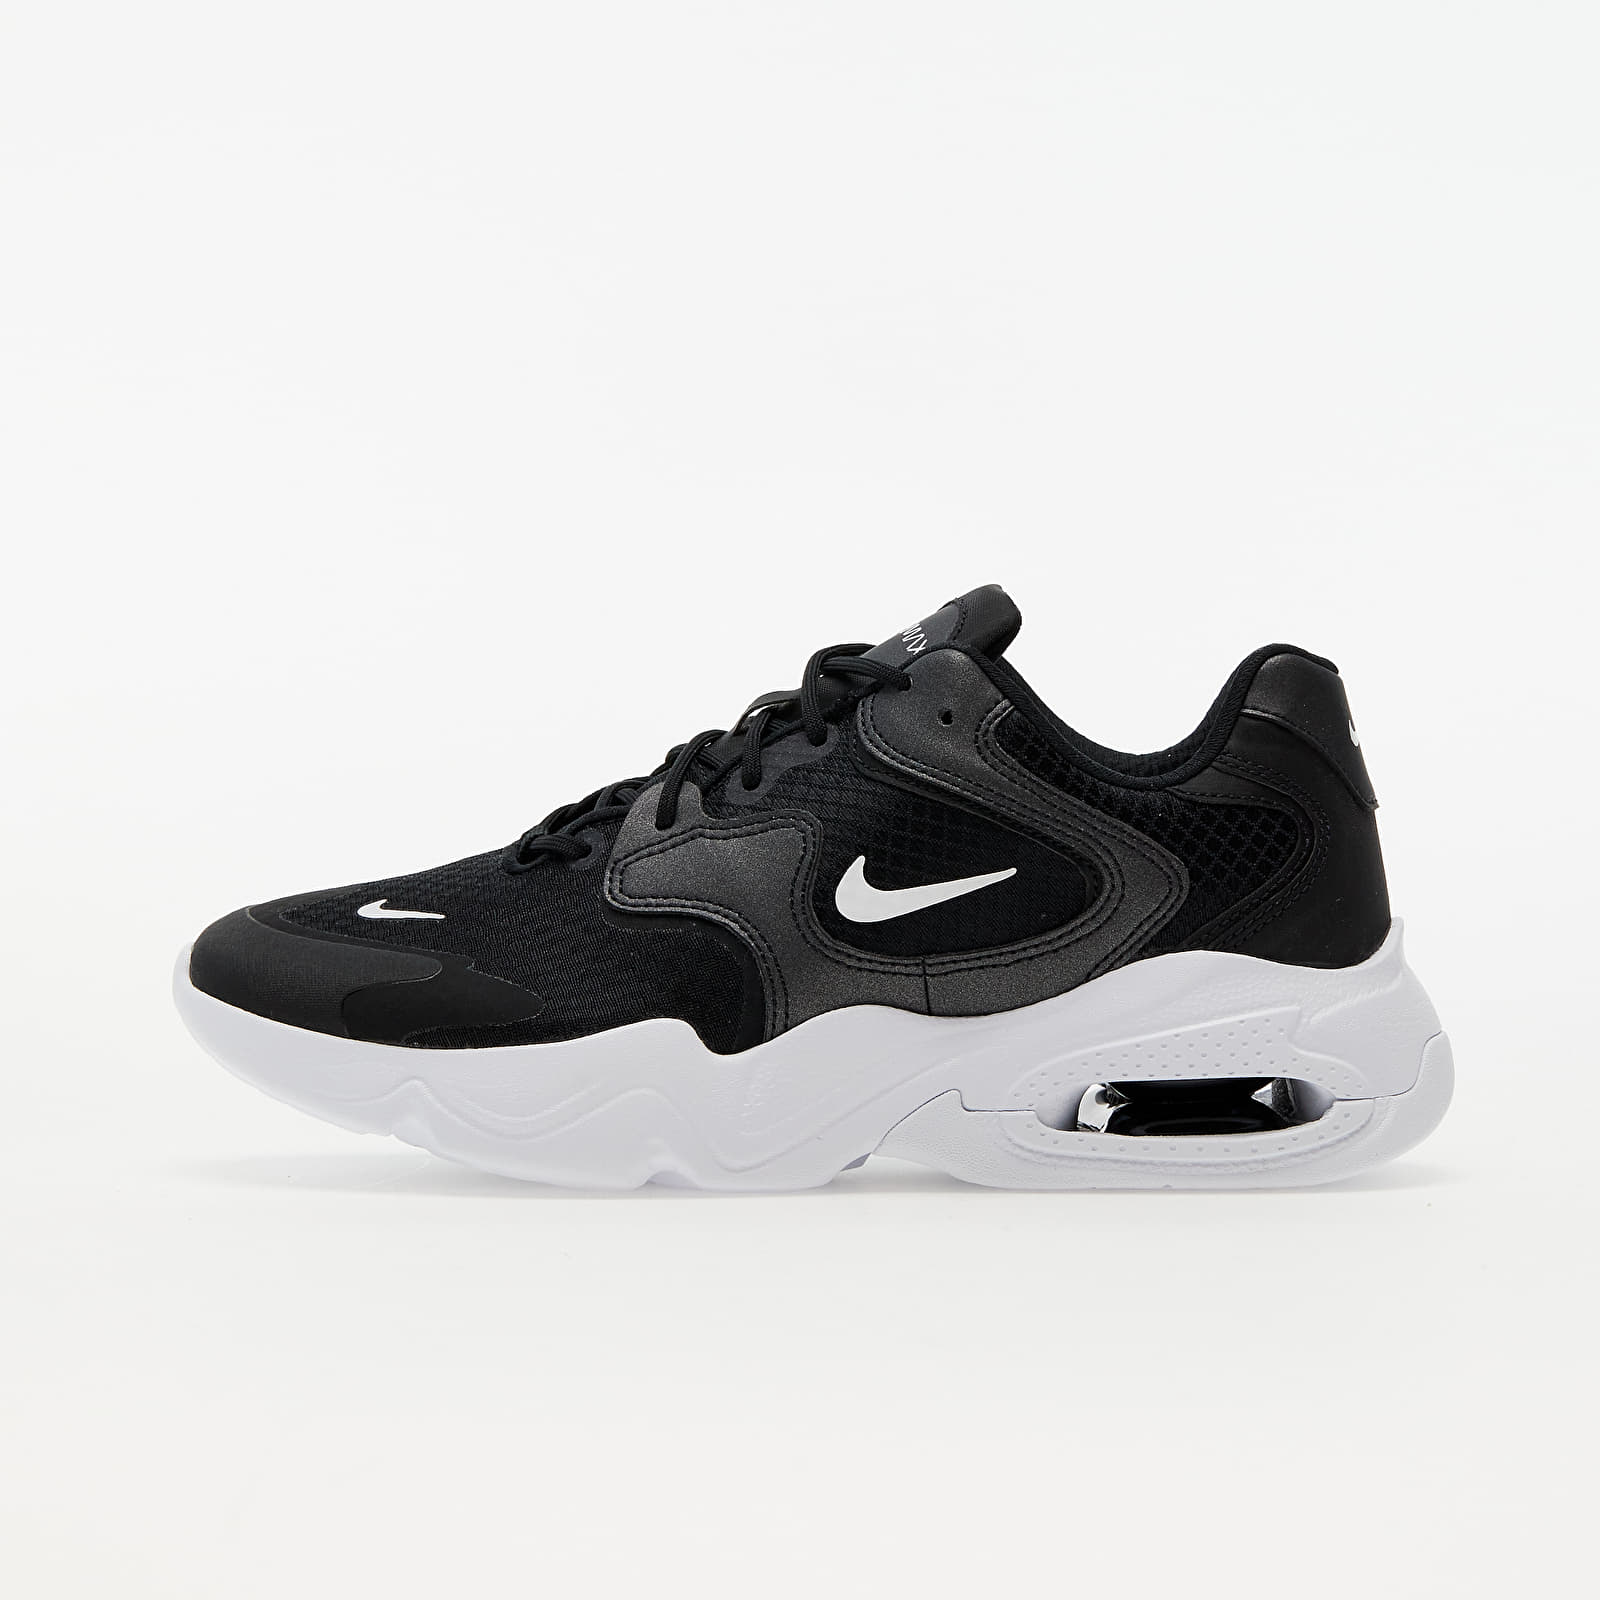 Nike W Air Max 2X Black/ White-Black EUR 41